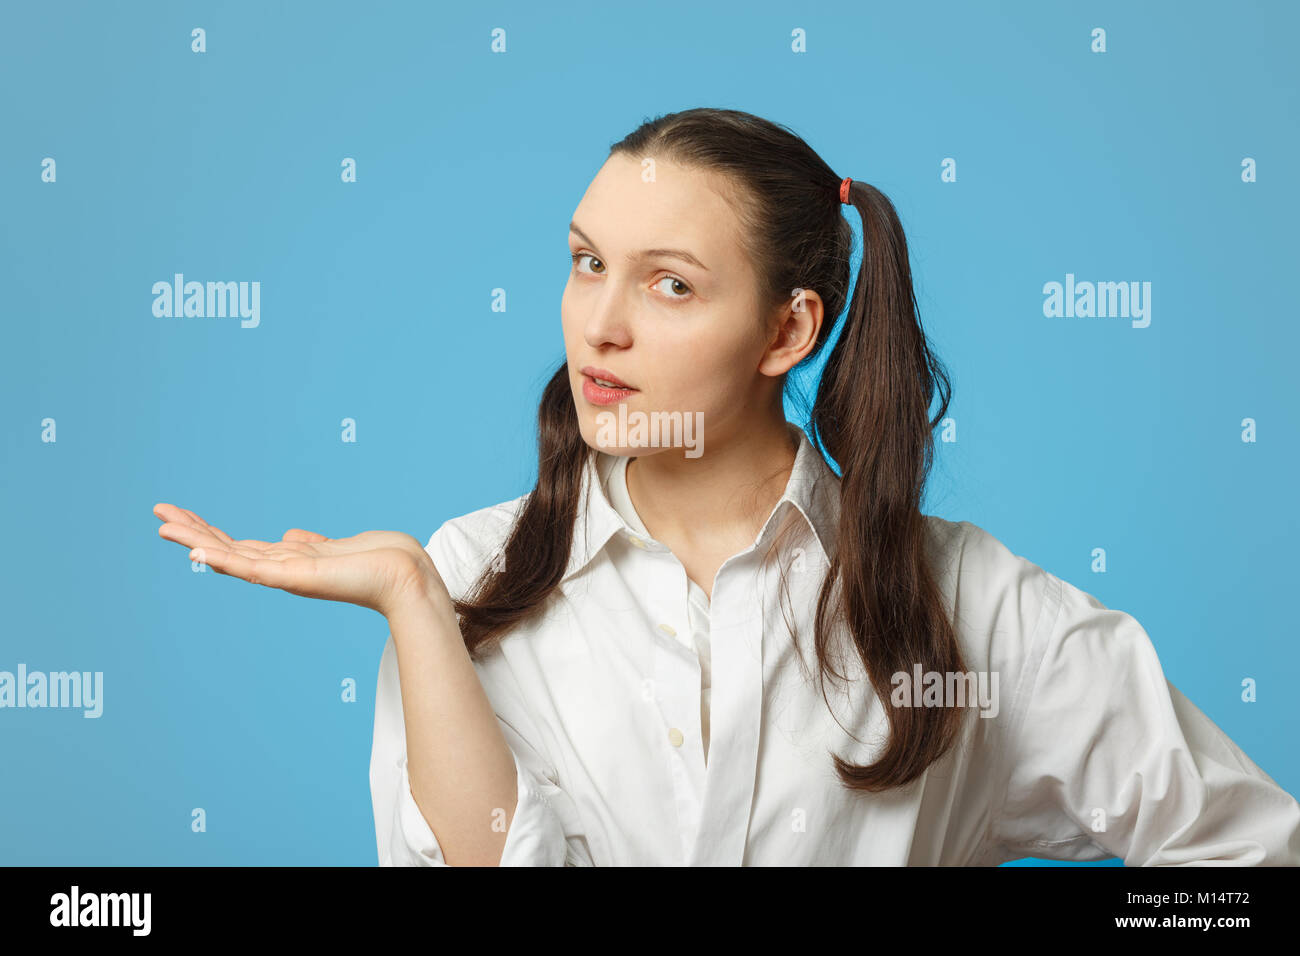 serious girl on blue background show open palm with place for product - Stock Image